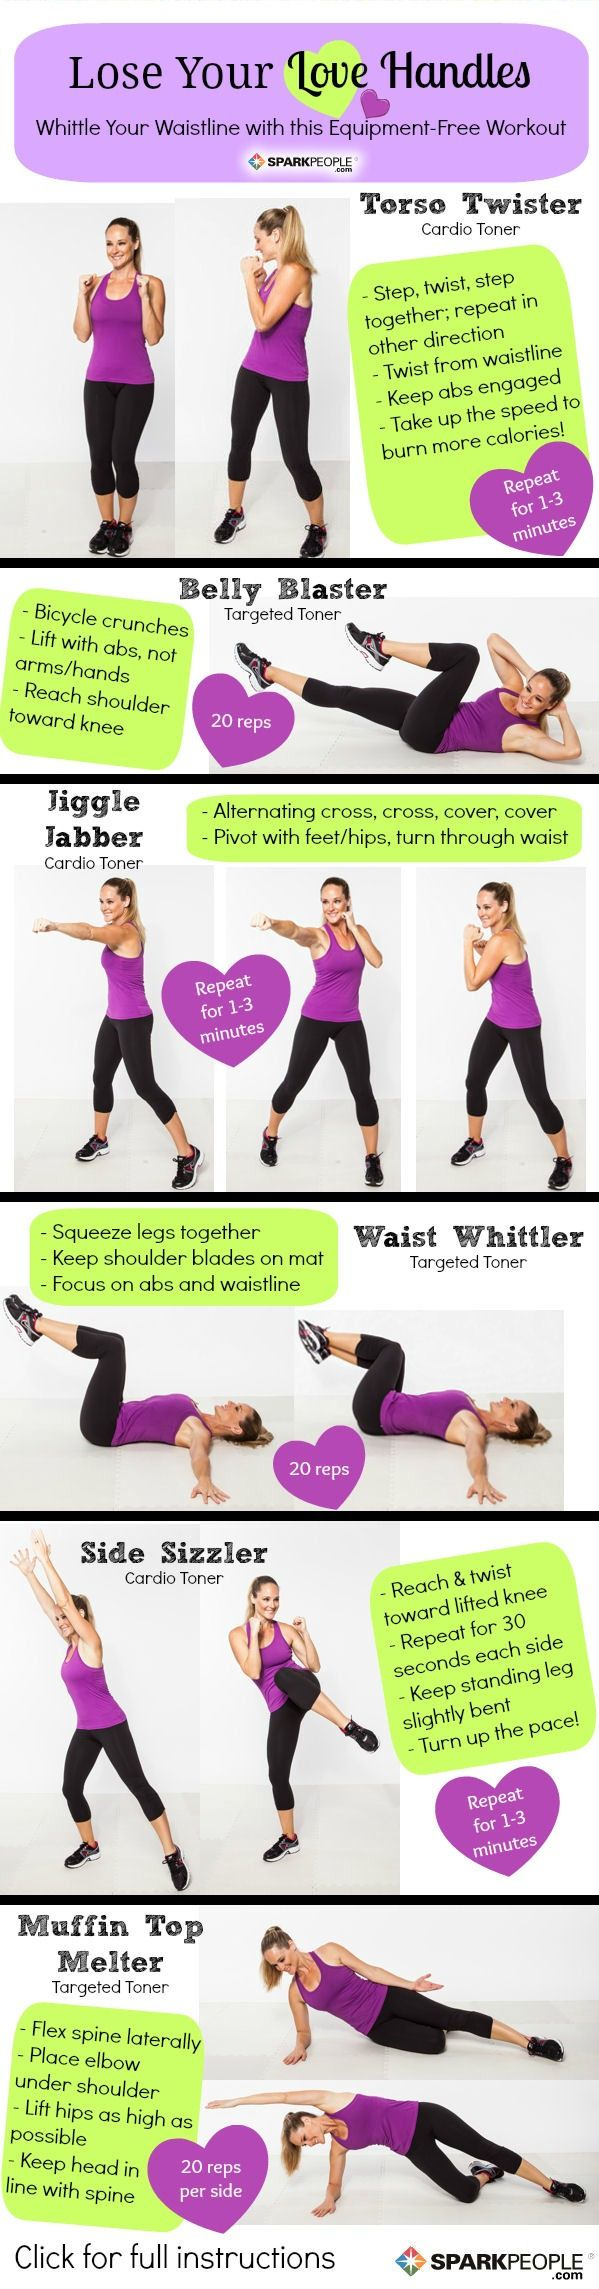 Lose Your Love Handles - PositiveMedPositiveMed | Where Positive Thinking Impacts Life